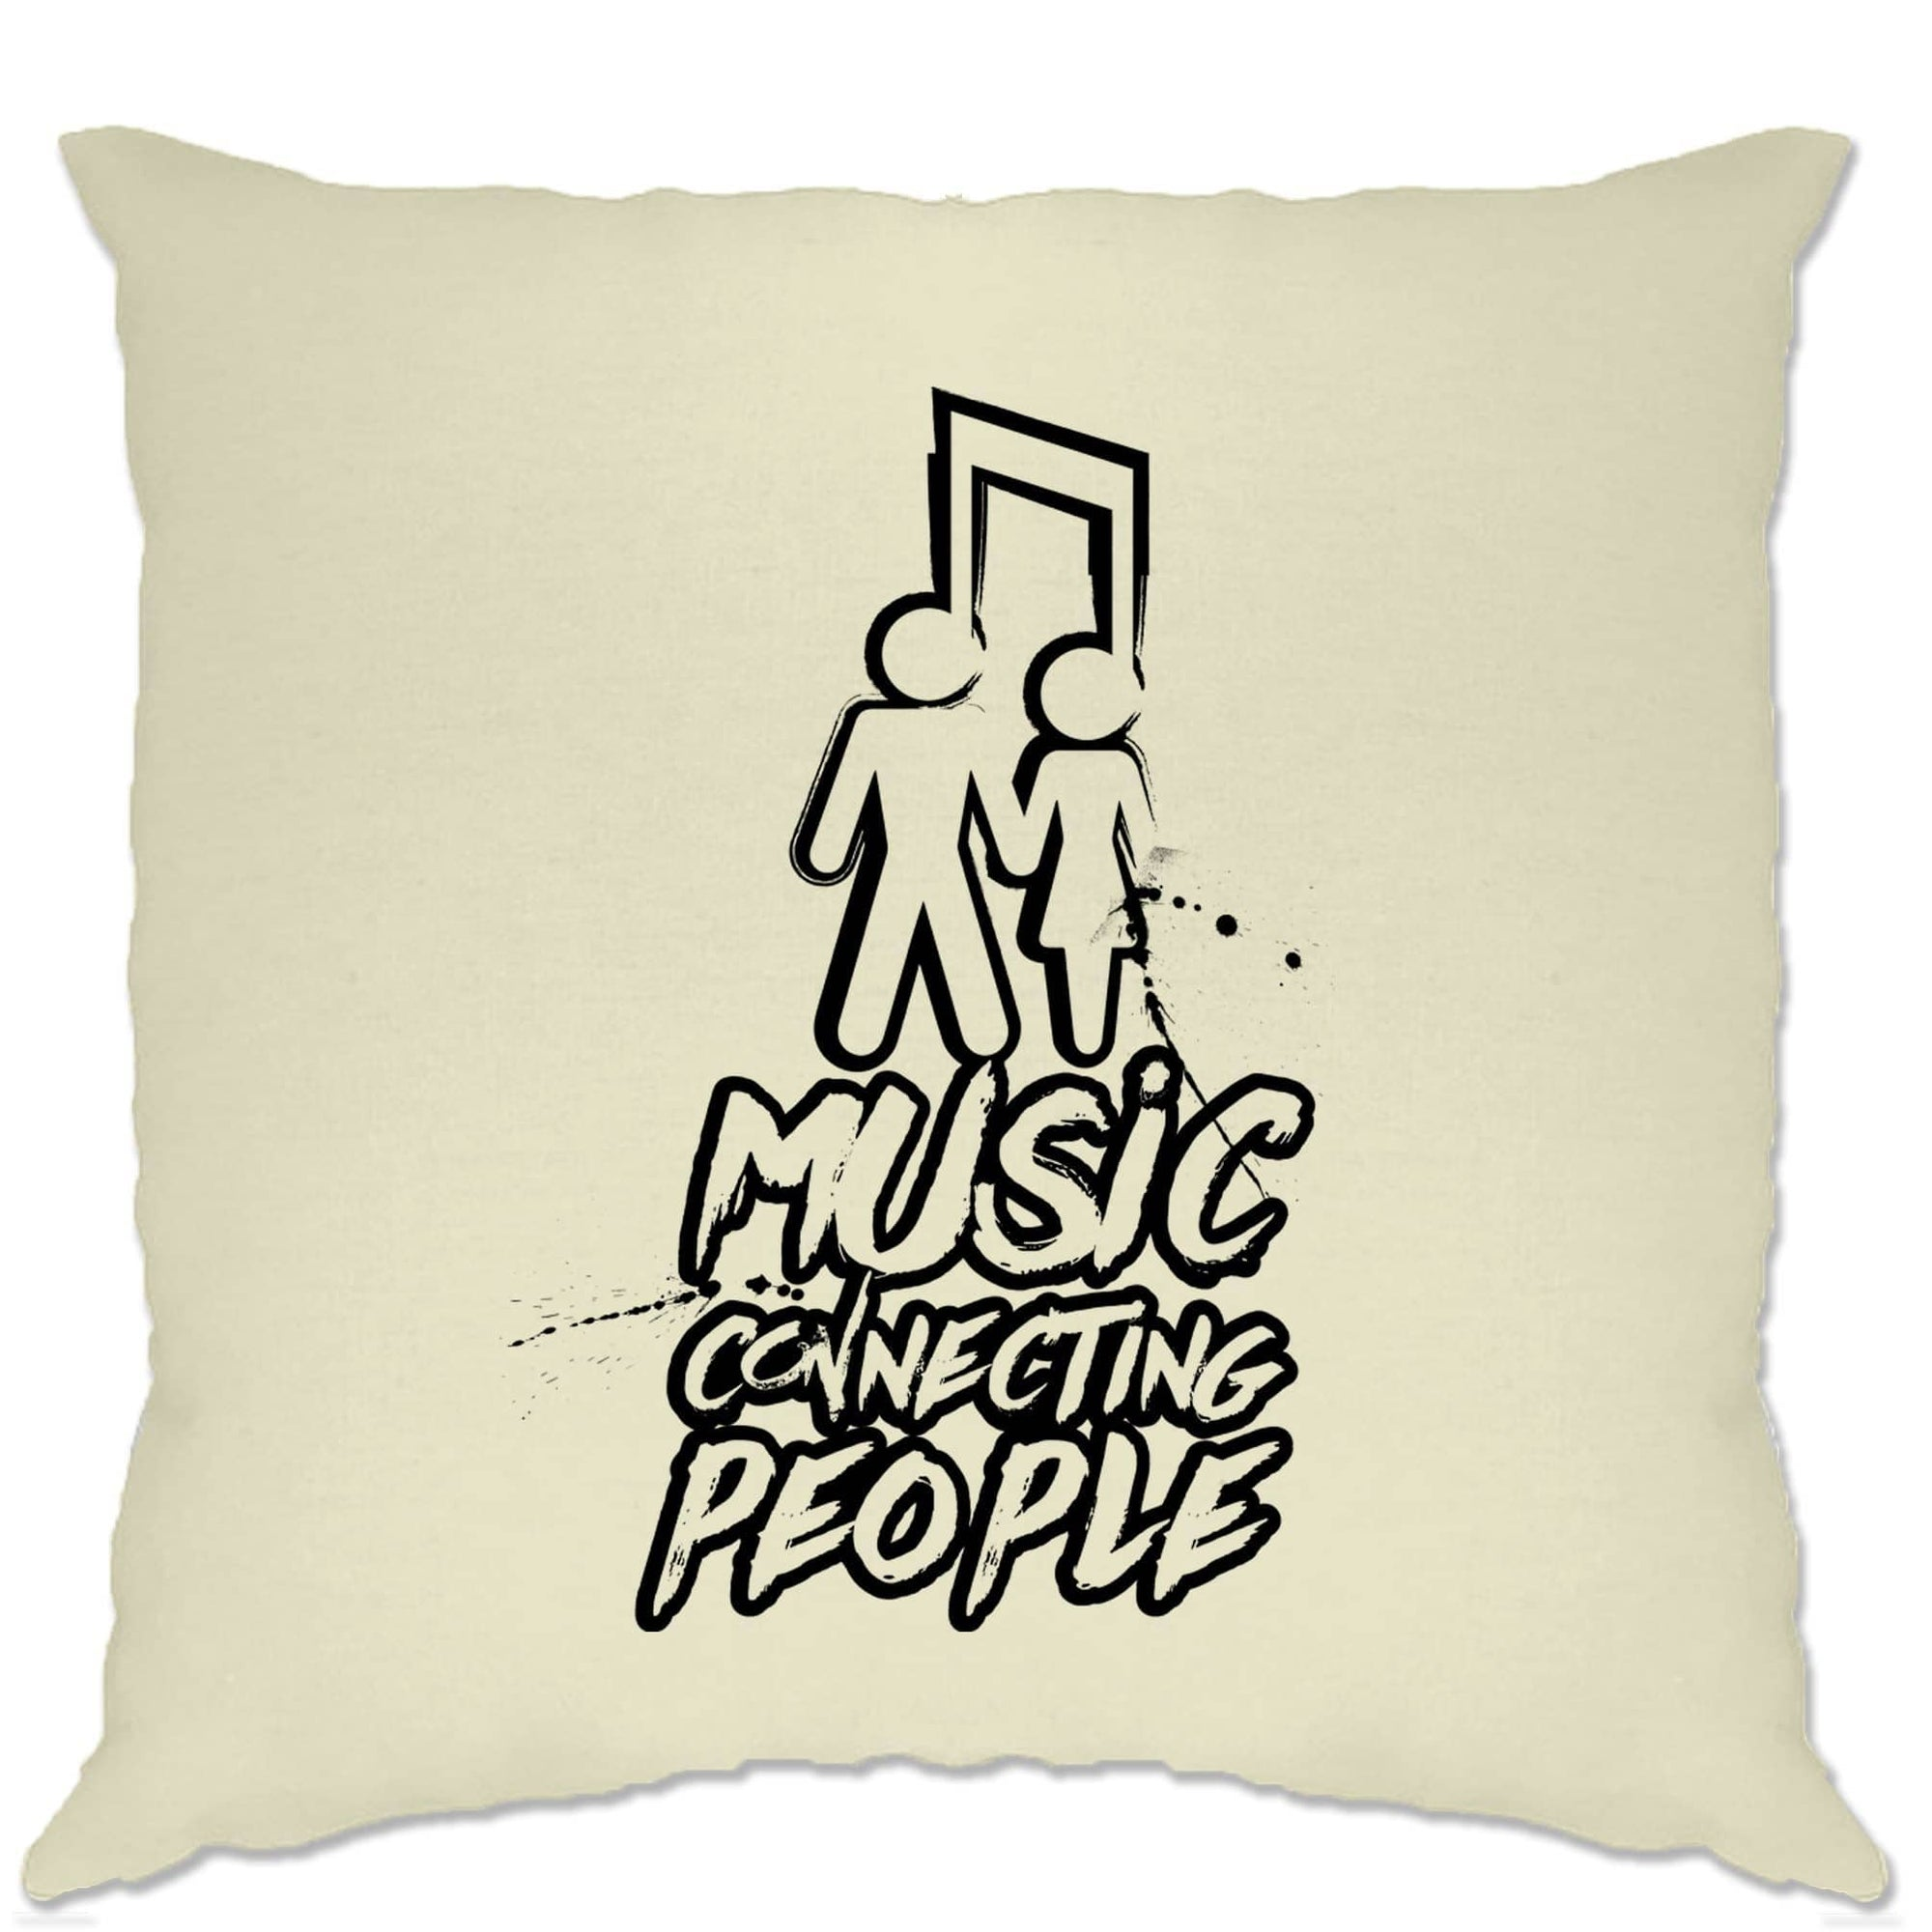 Cute Couples Cushion Cover Music Connecting People Slogan